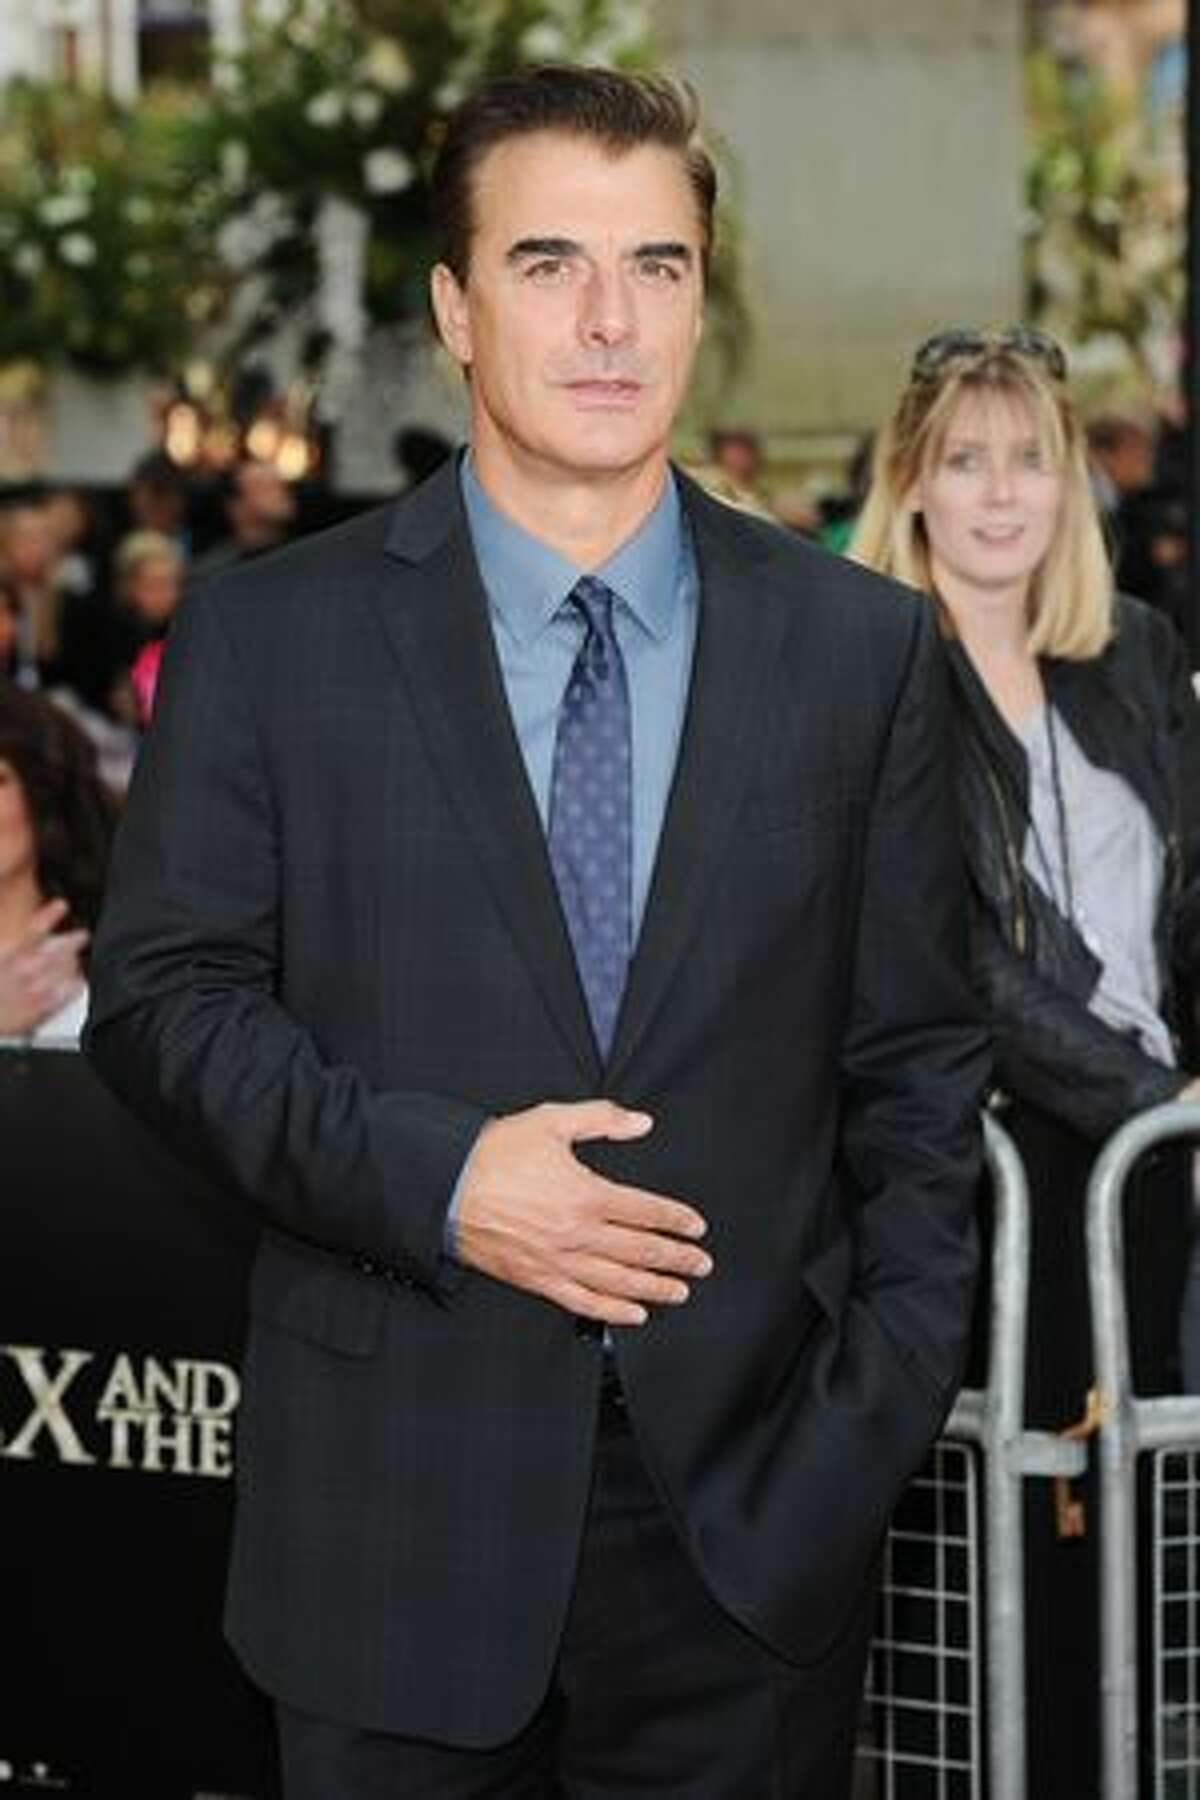 Chris Noth attends the UK premiere of Sex And The City 2 at Odeon Leicester Square in London.